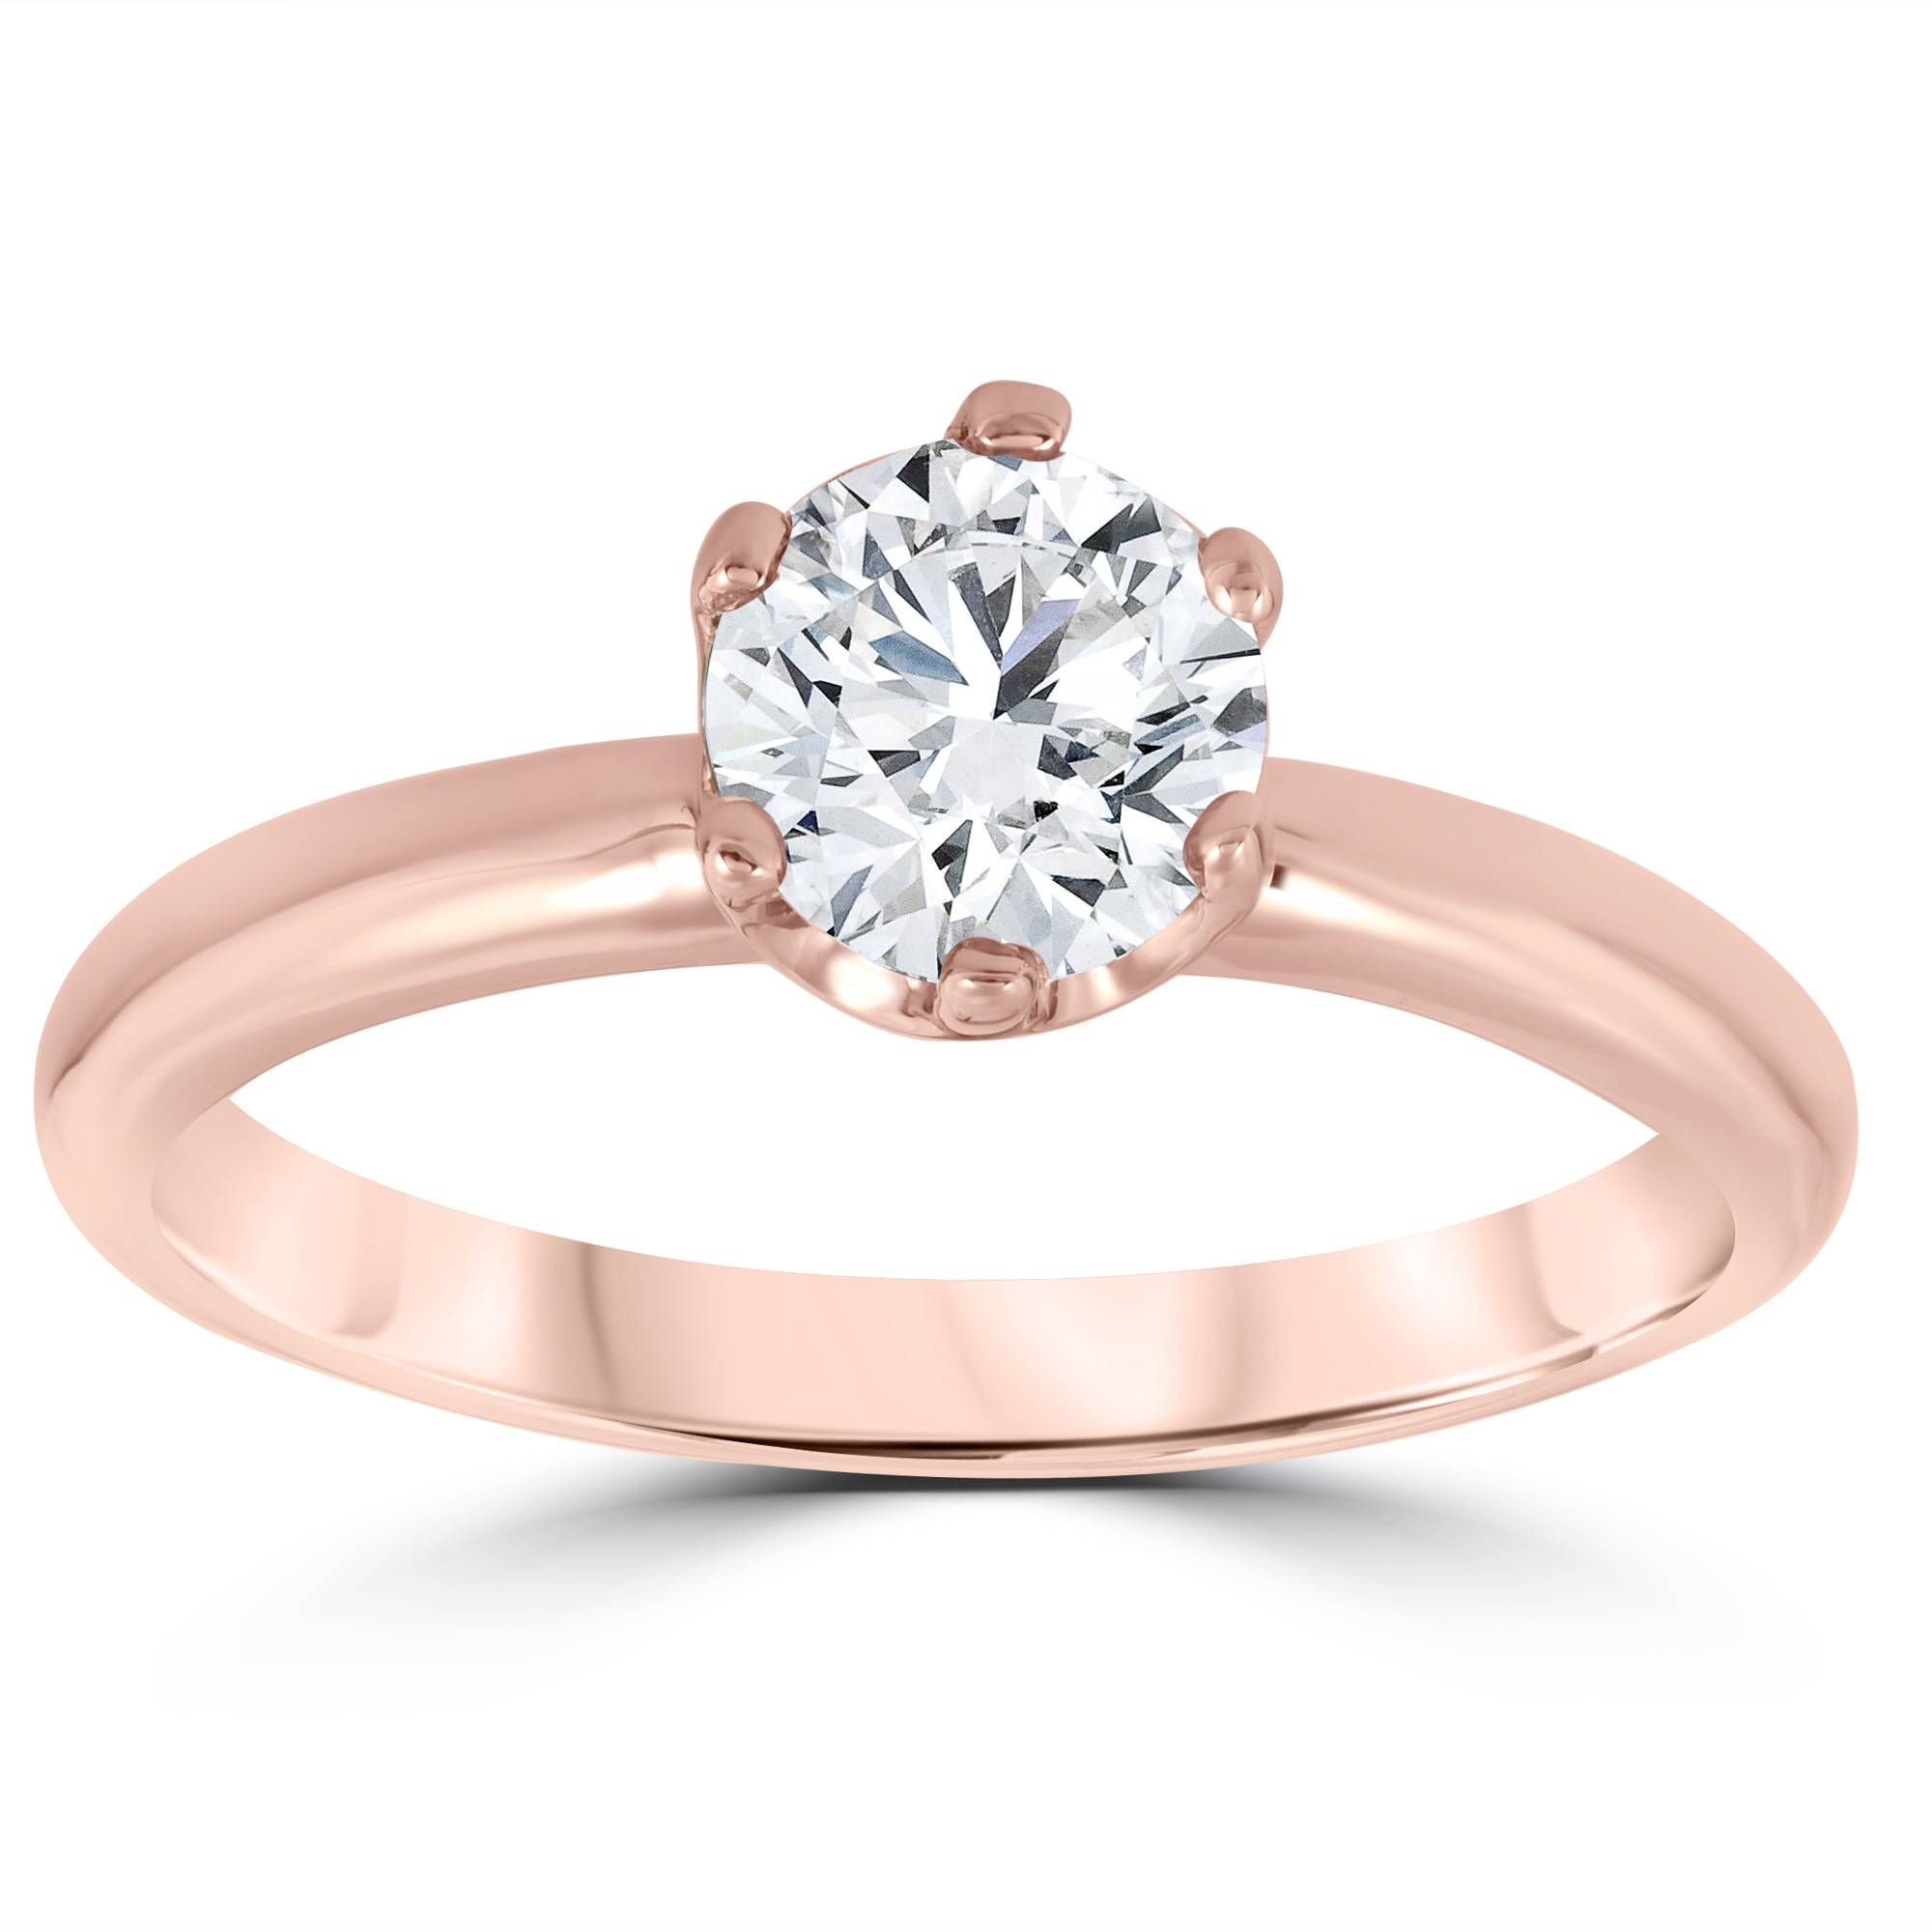 1ct Round Diamond Solitaire Engagement Ring 14K Rose Gold by Pompeii3